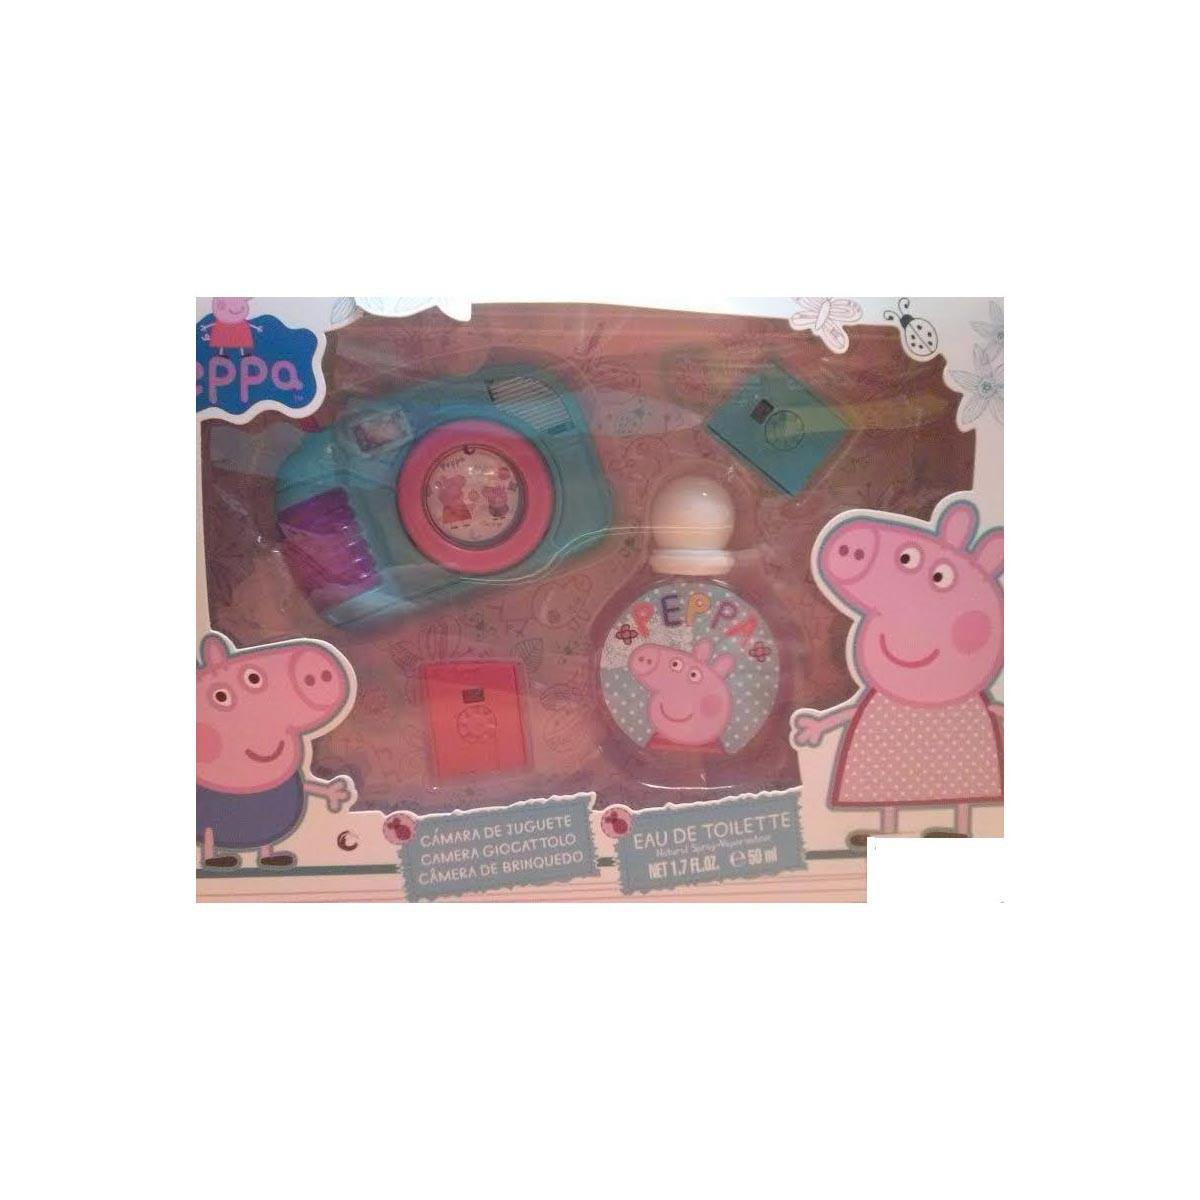 Consumo Peppa Pig Eau De Toilette 50 ml Toy Camera